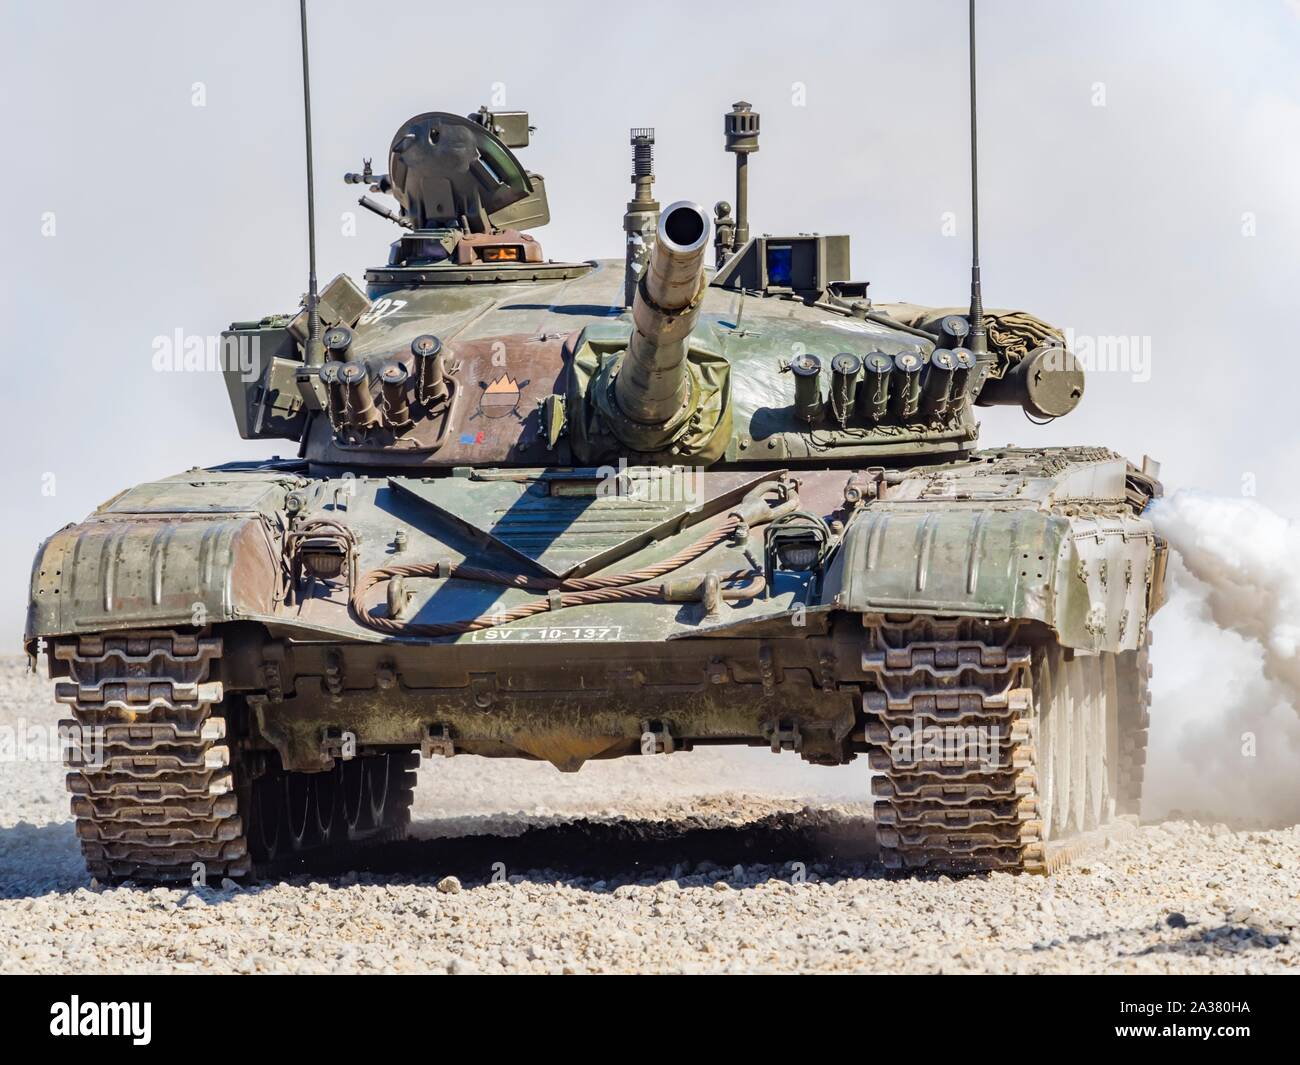 Slovenian armed forces M84 tank driving demonstration in Pivka Slovenia isolated from background Stock Photo